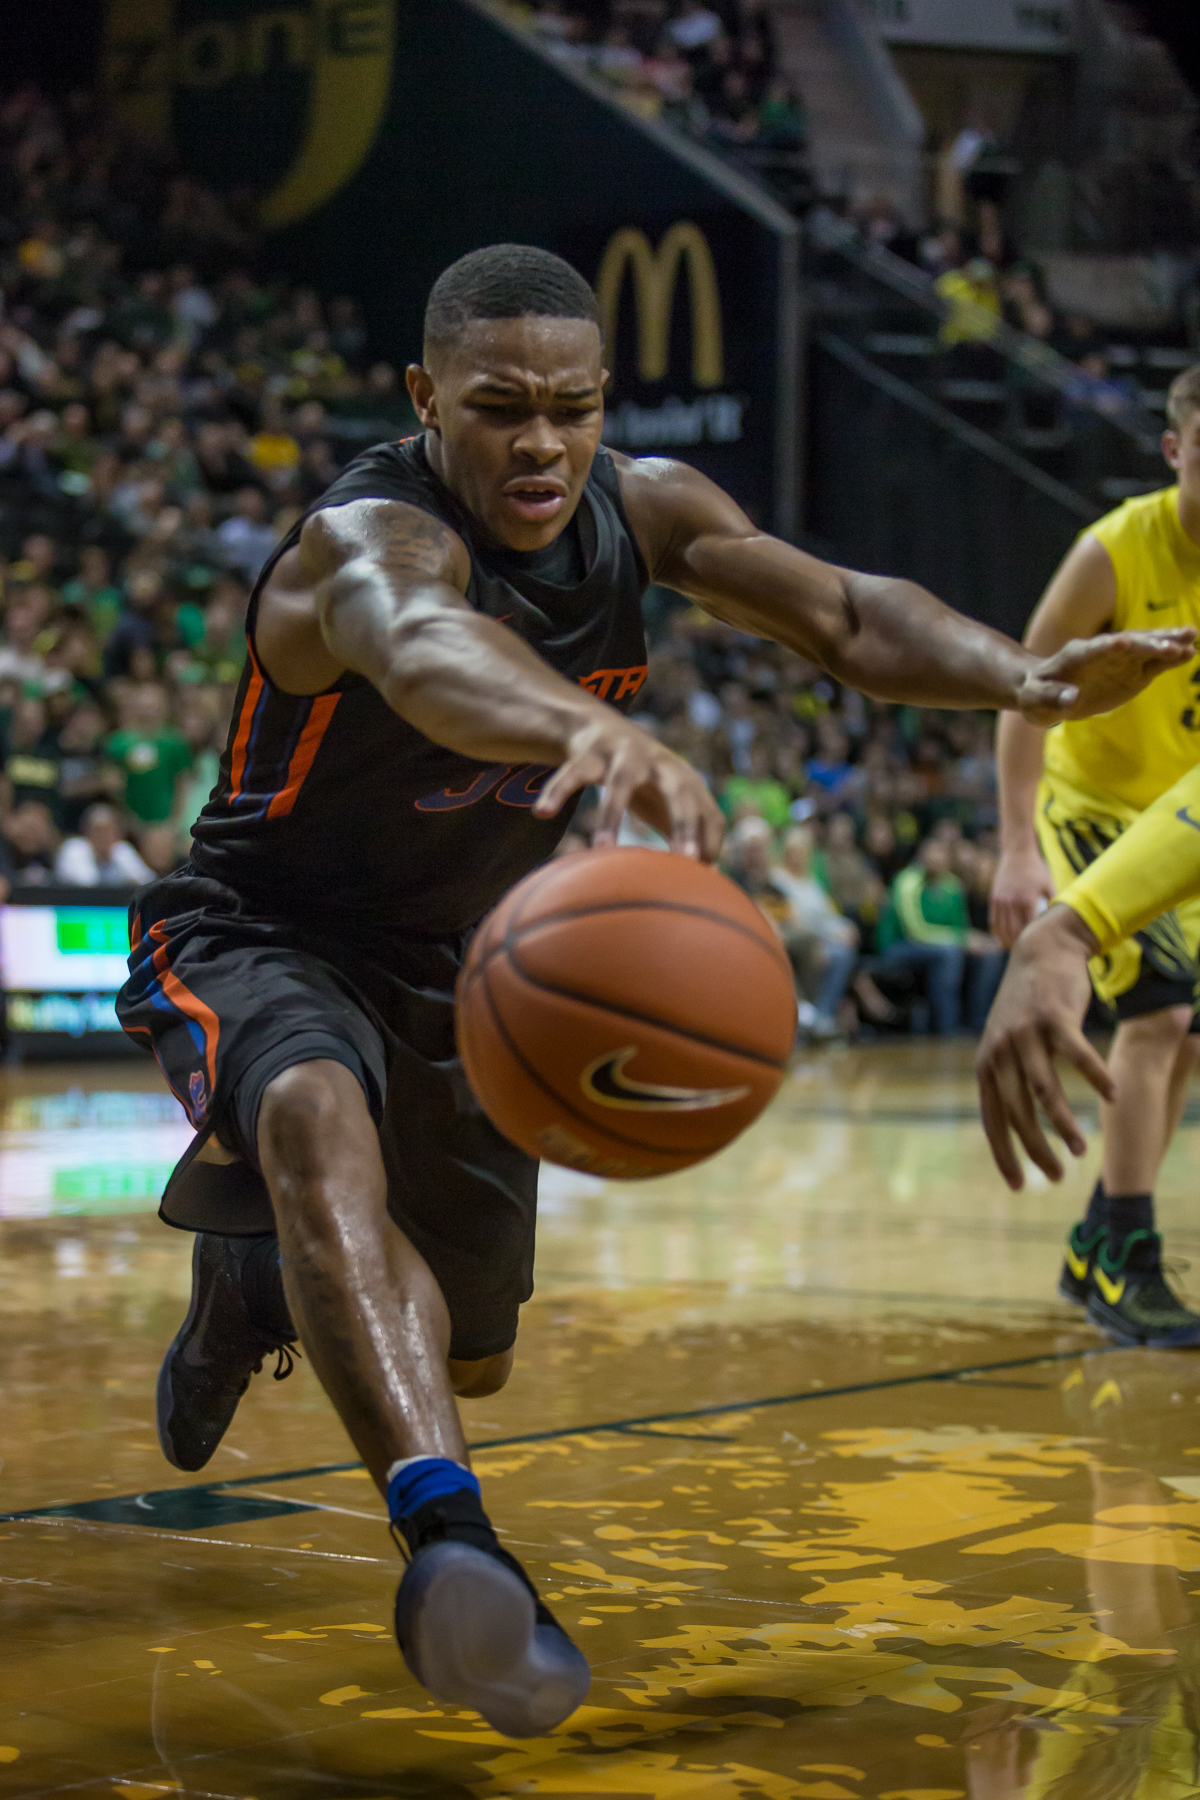 Boise State guard Paris Austin (#30) reaches after a lose ball, saving it from going out of bounds. After trailing for most of the game, the Oregon Ducks defeated the Boise State Broncos 68-63. Photo by Dillon Vibes